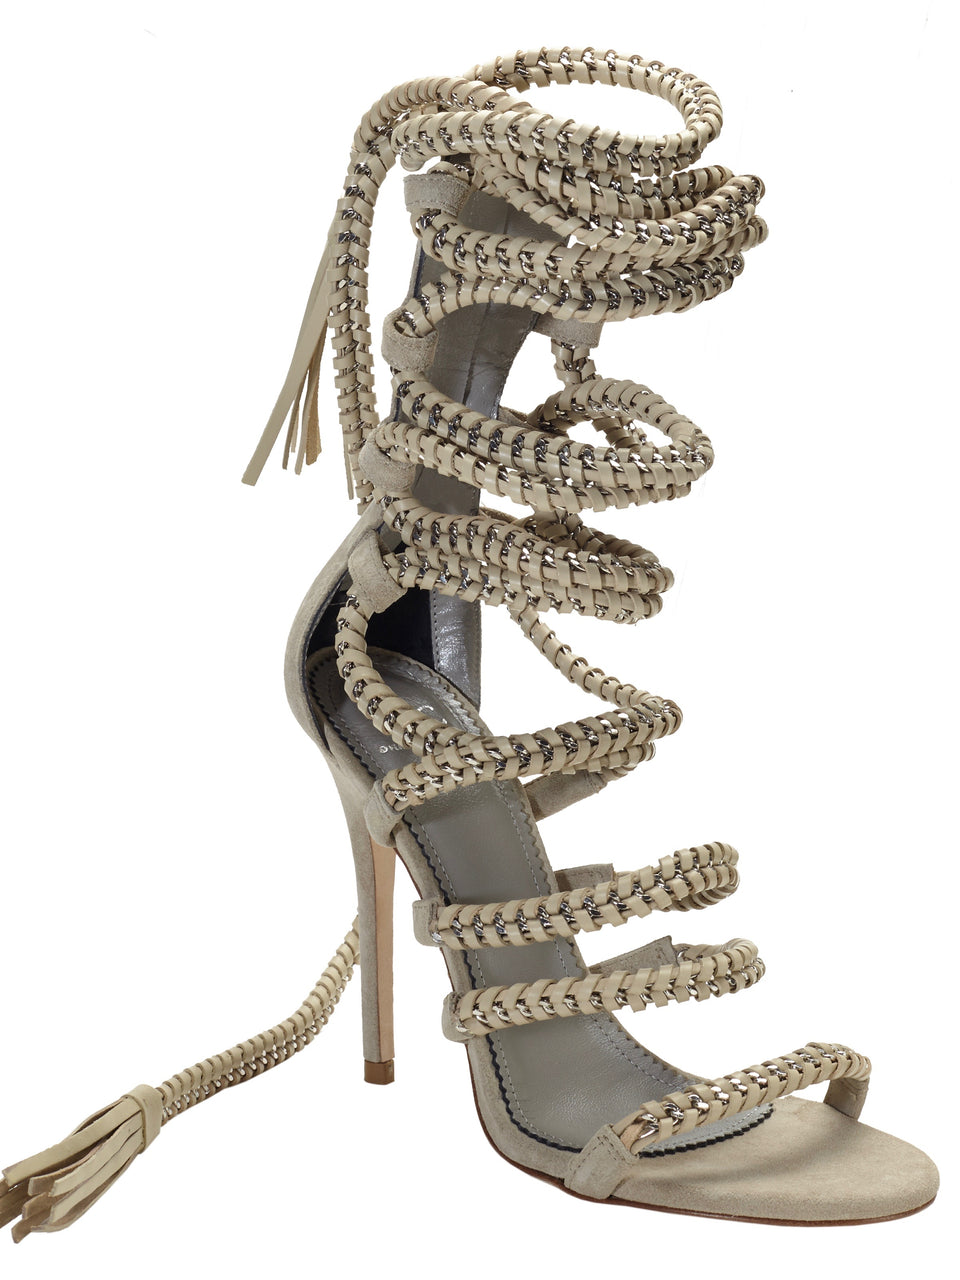 IMENA CASHMERE SUEDE SANDAL - Monika Chiang